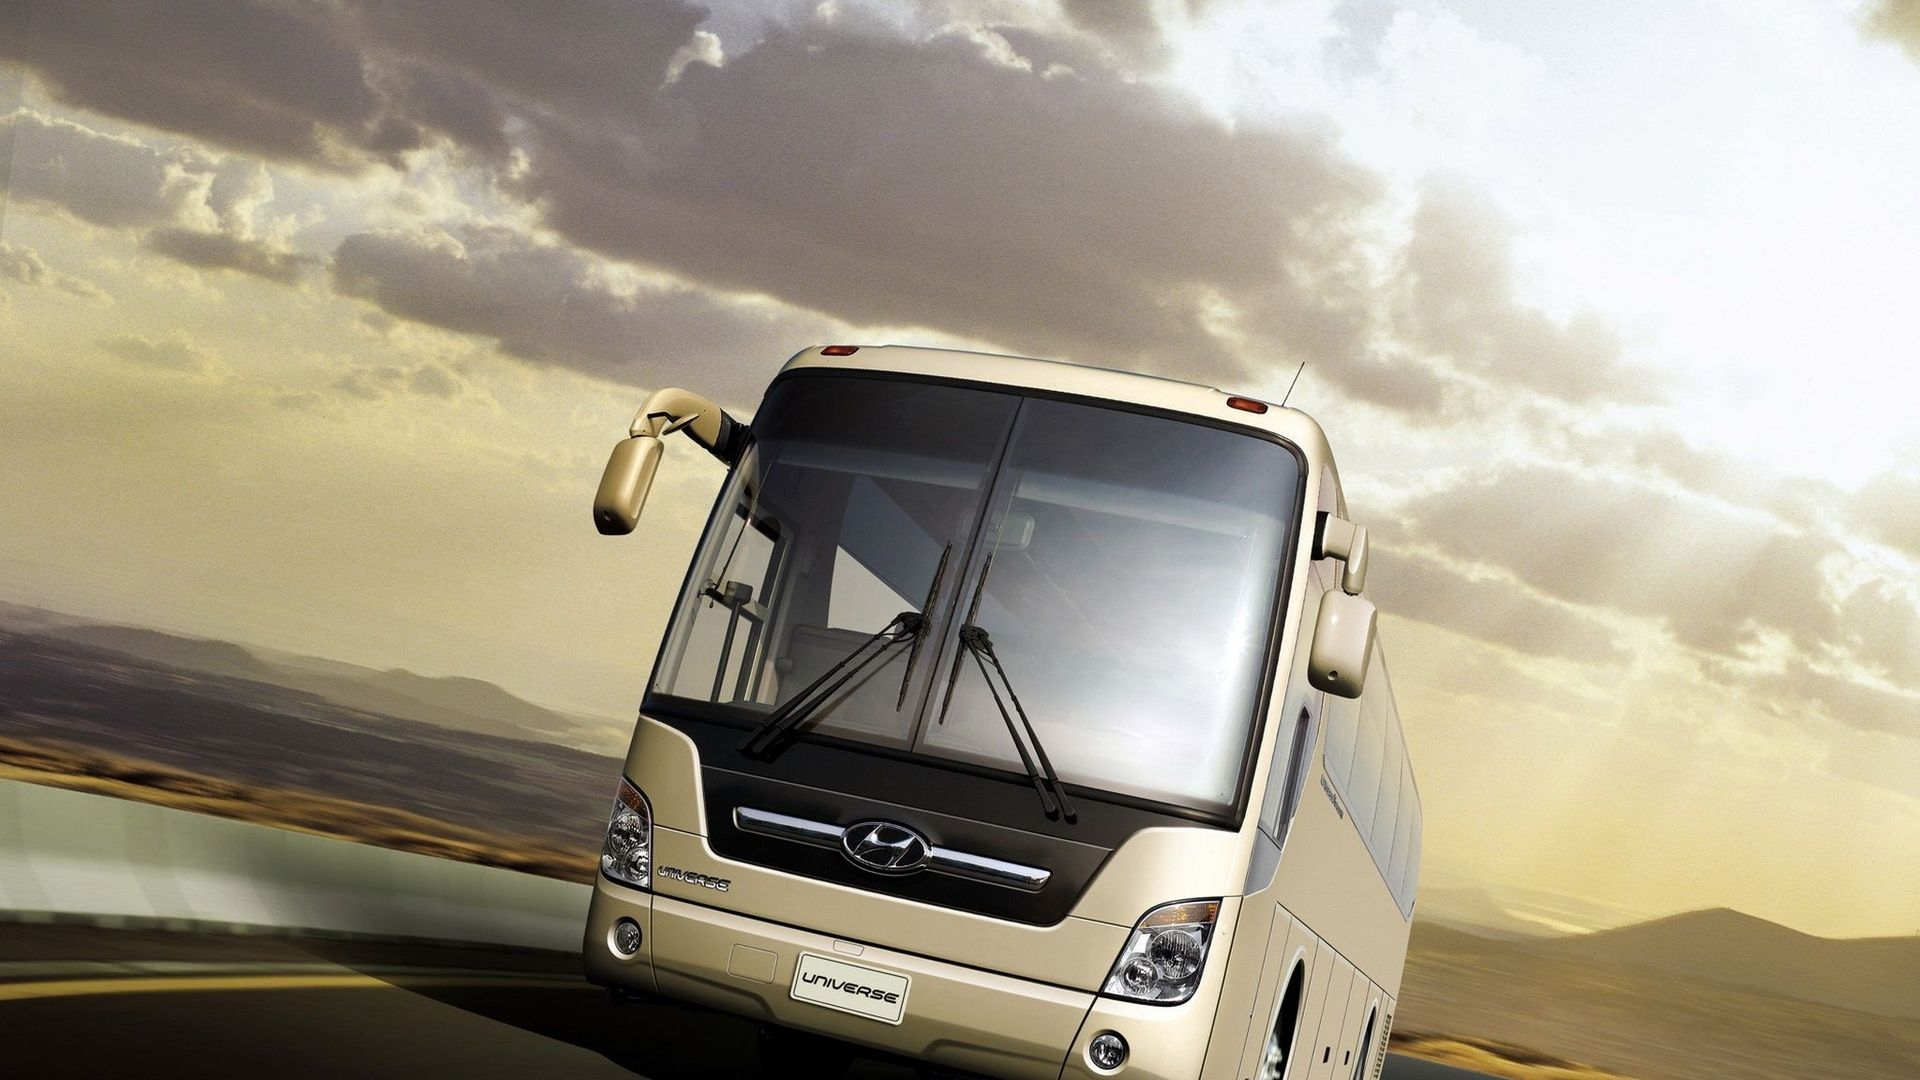 travel bus images hd